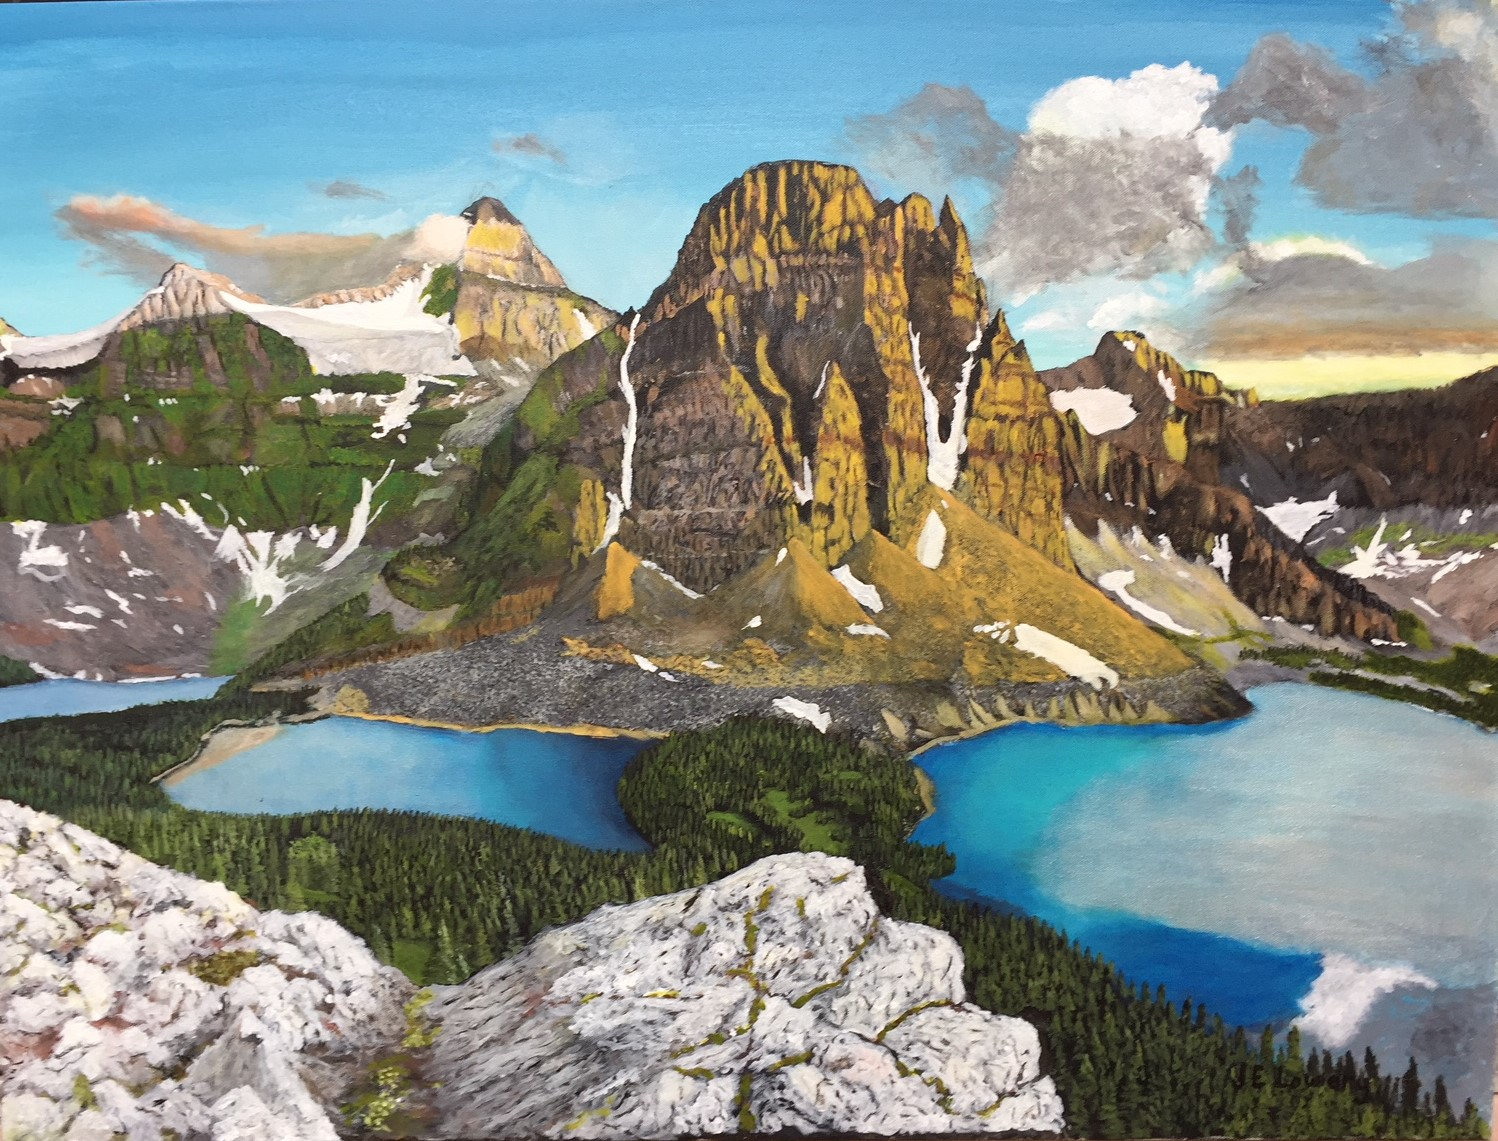 Nub Peak artwork by James Lowery - art listed for sale on Artplode